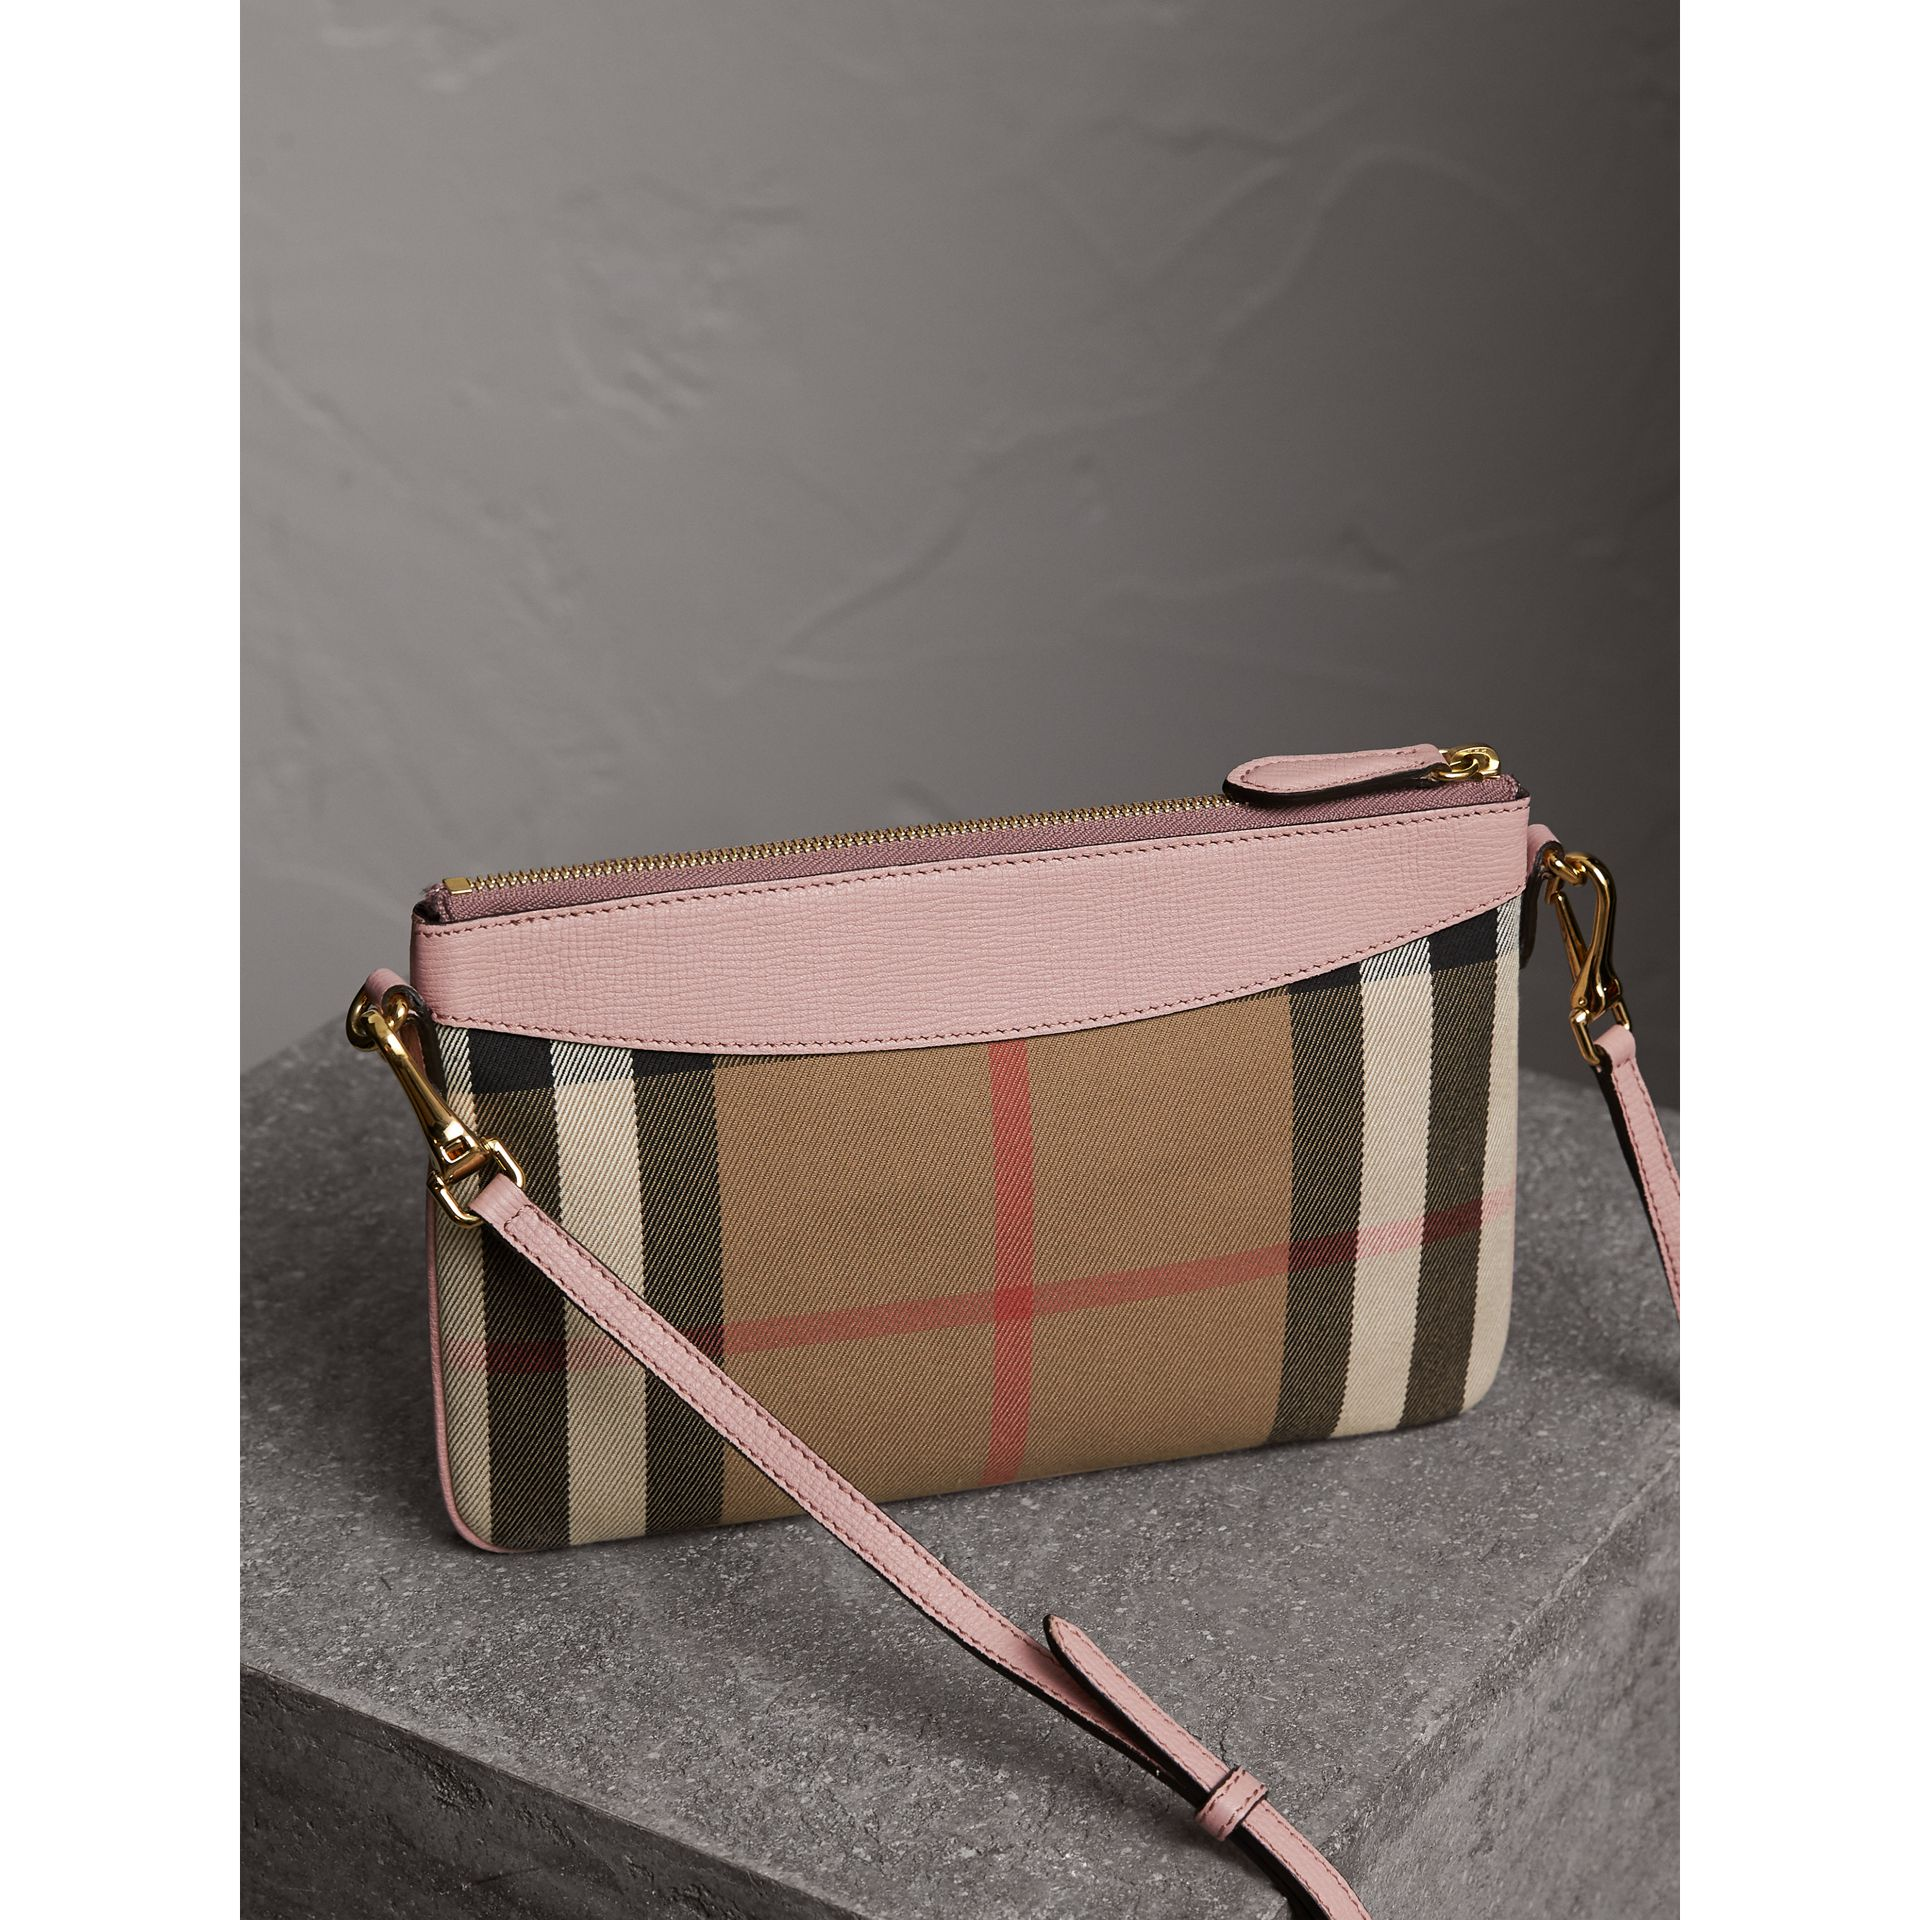 House Check and Leather Clutch Bag in Pale Orchid - Women | Burberry United States - gallery image 3